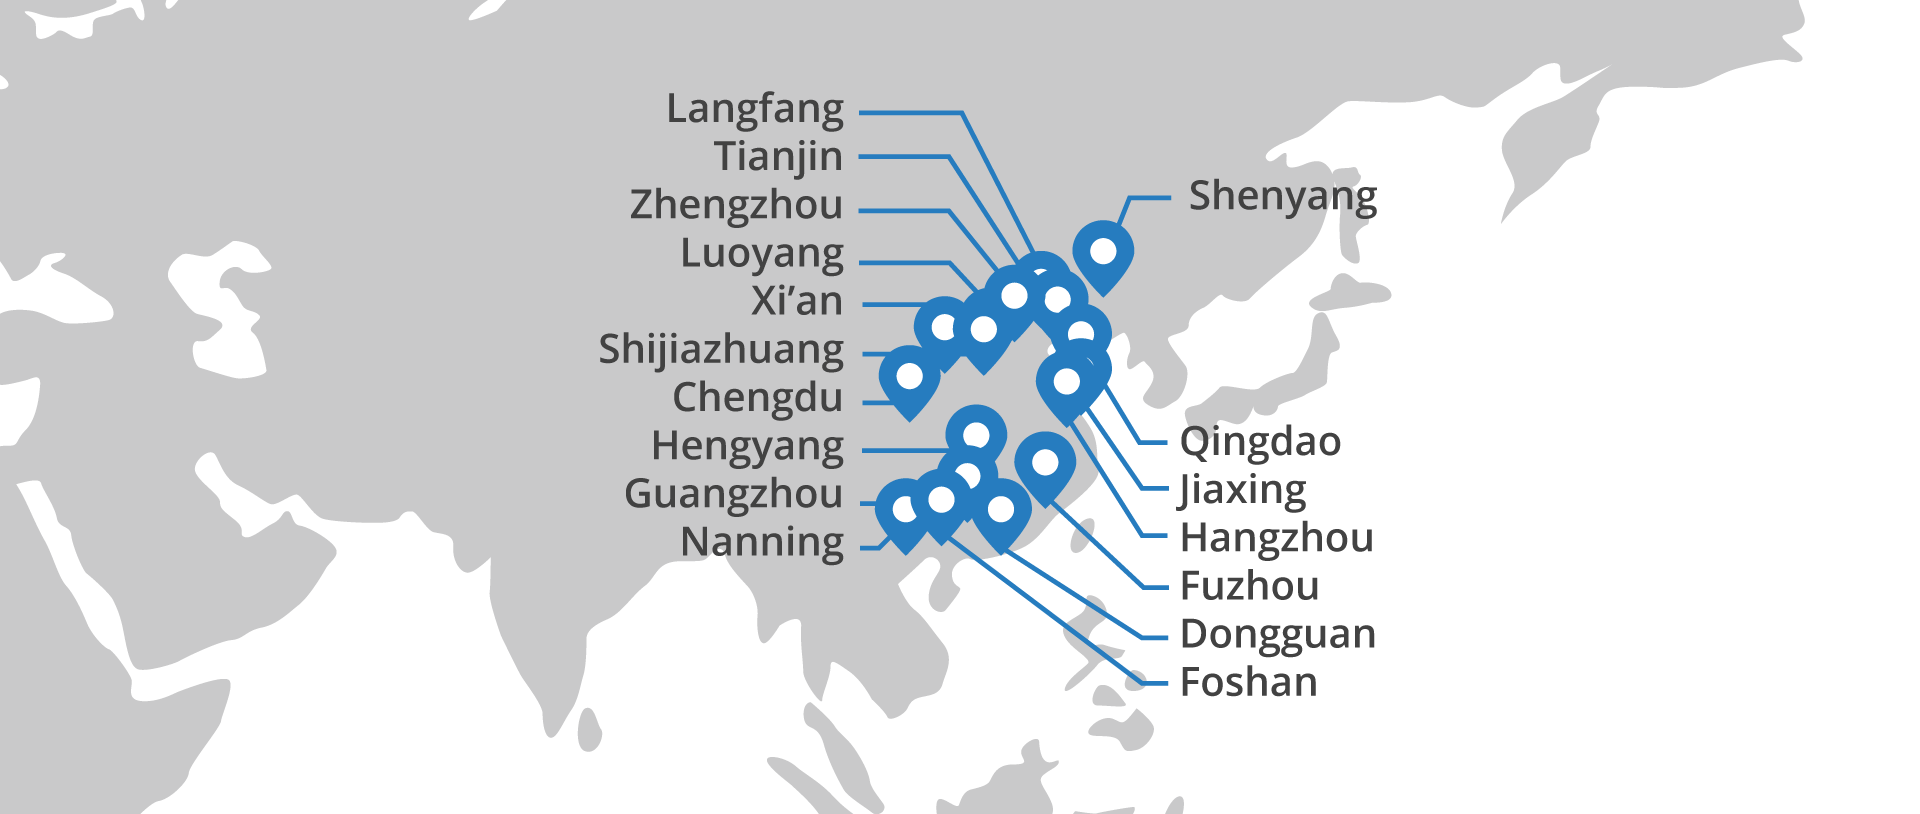 CloudFlare's Network in China